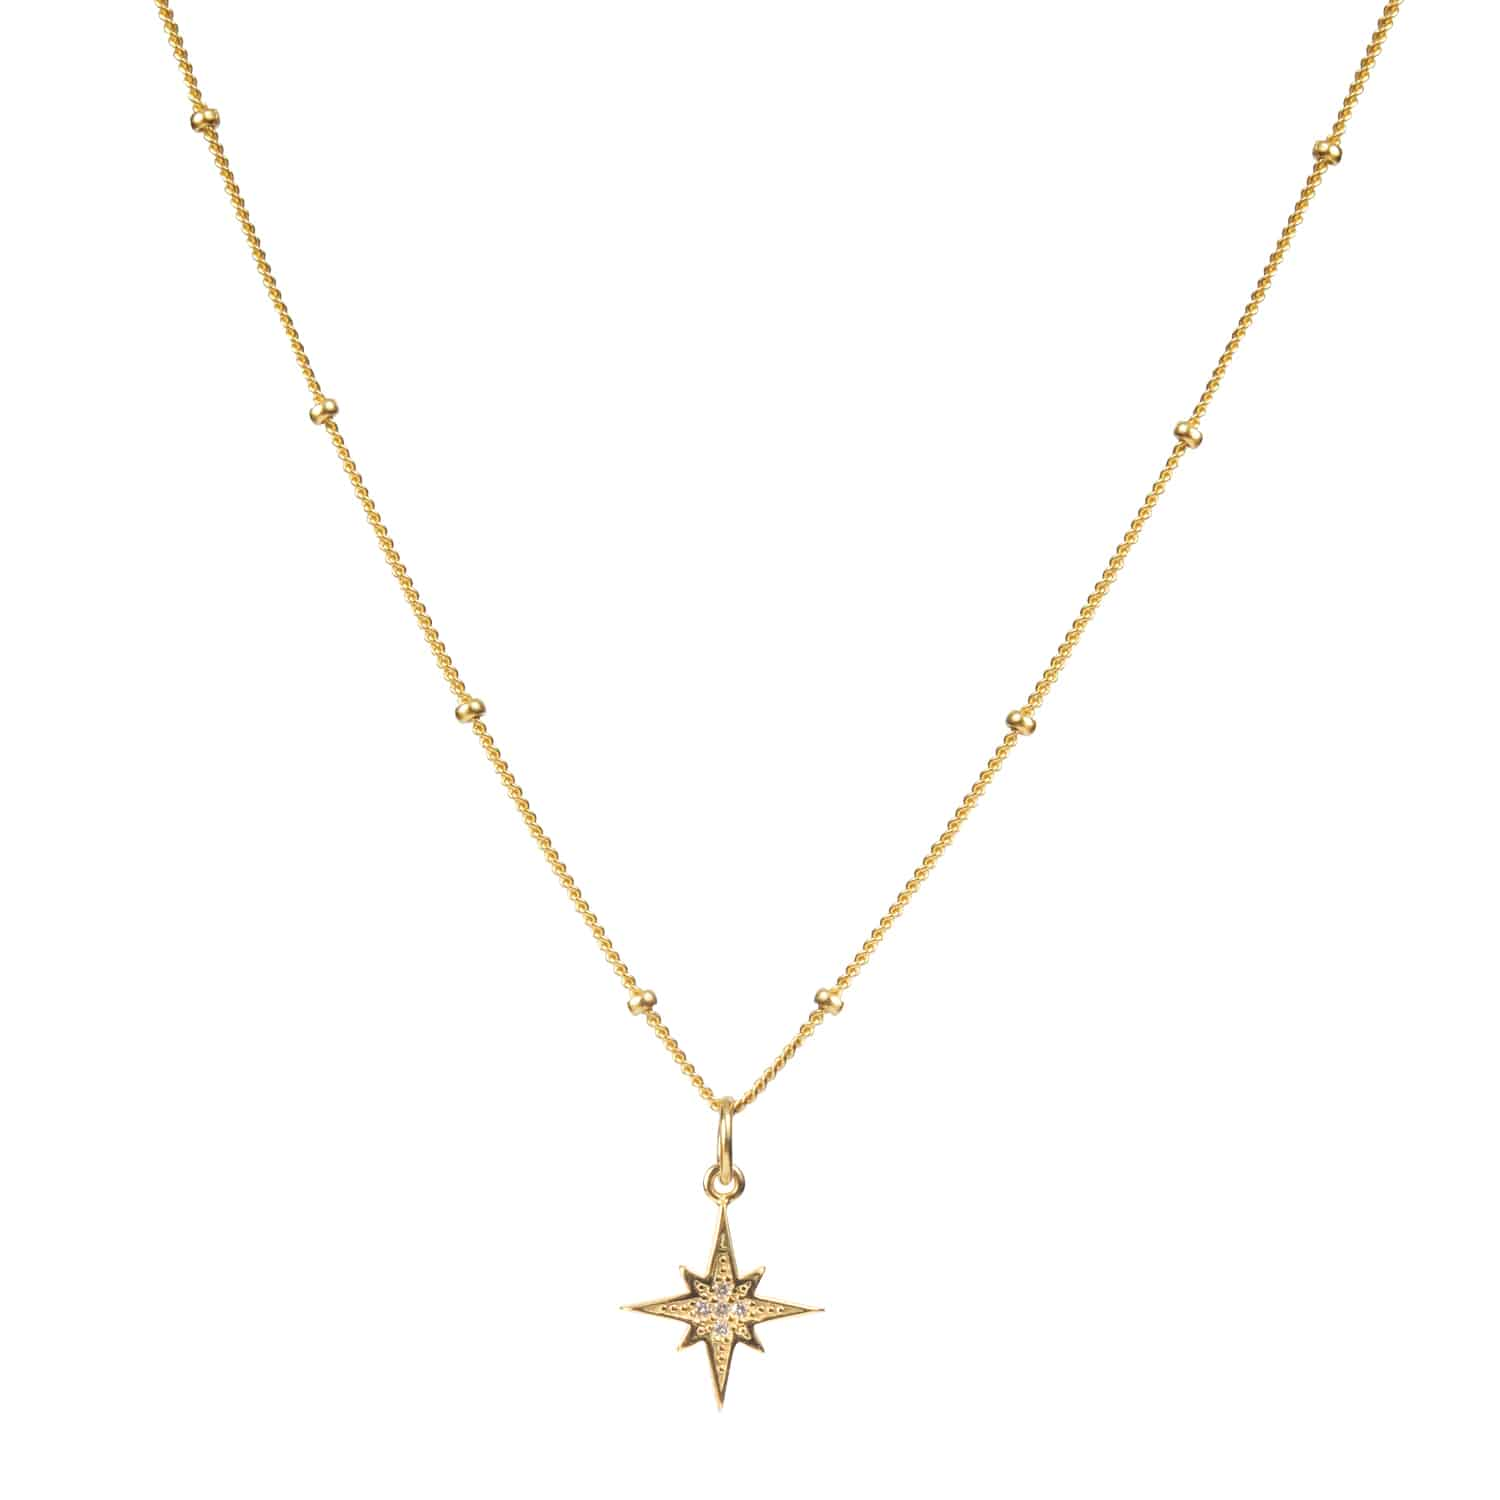 COLLAR GOLD VERMEIL NORTHSTAR